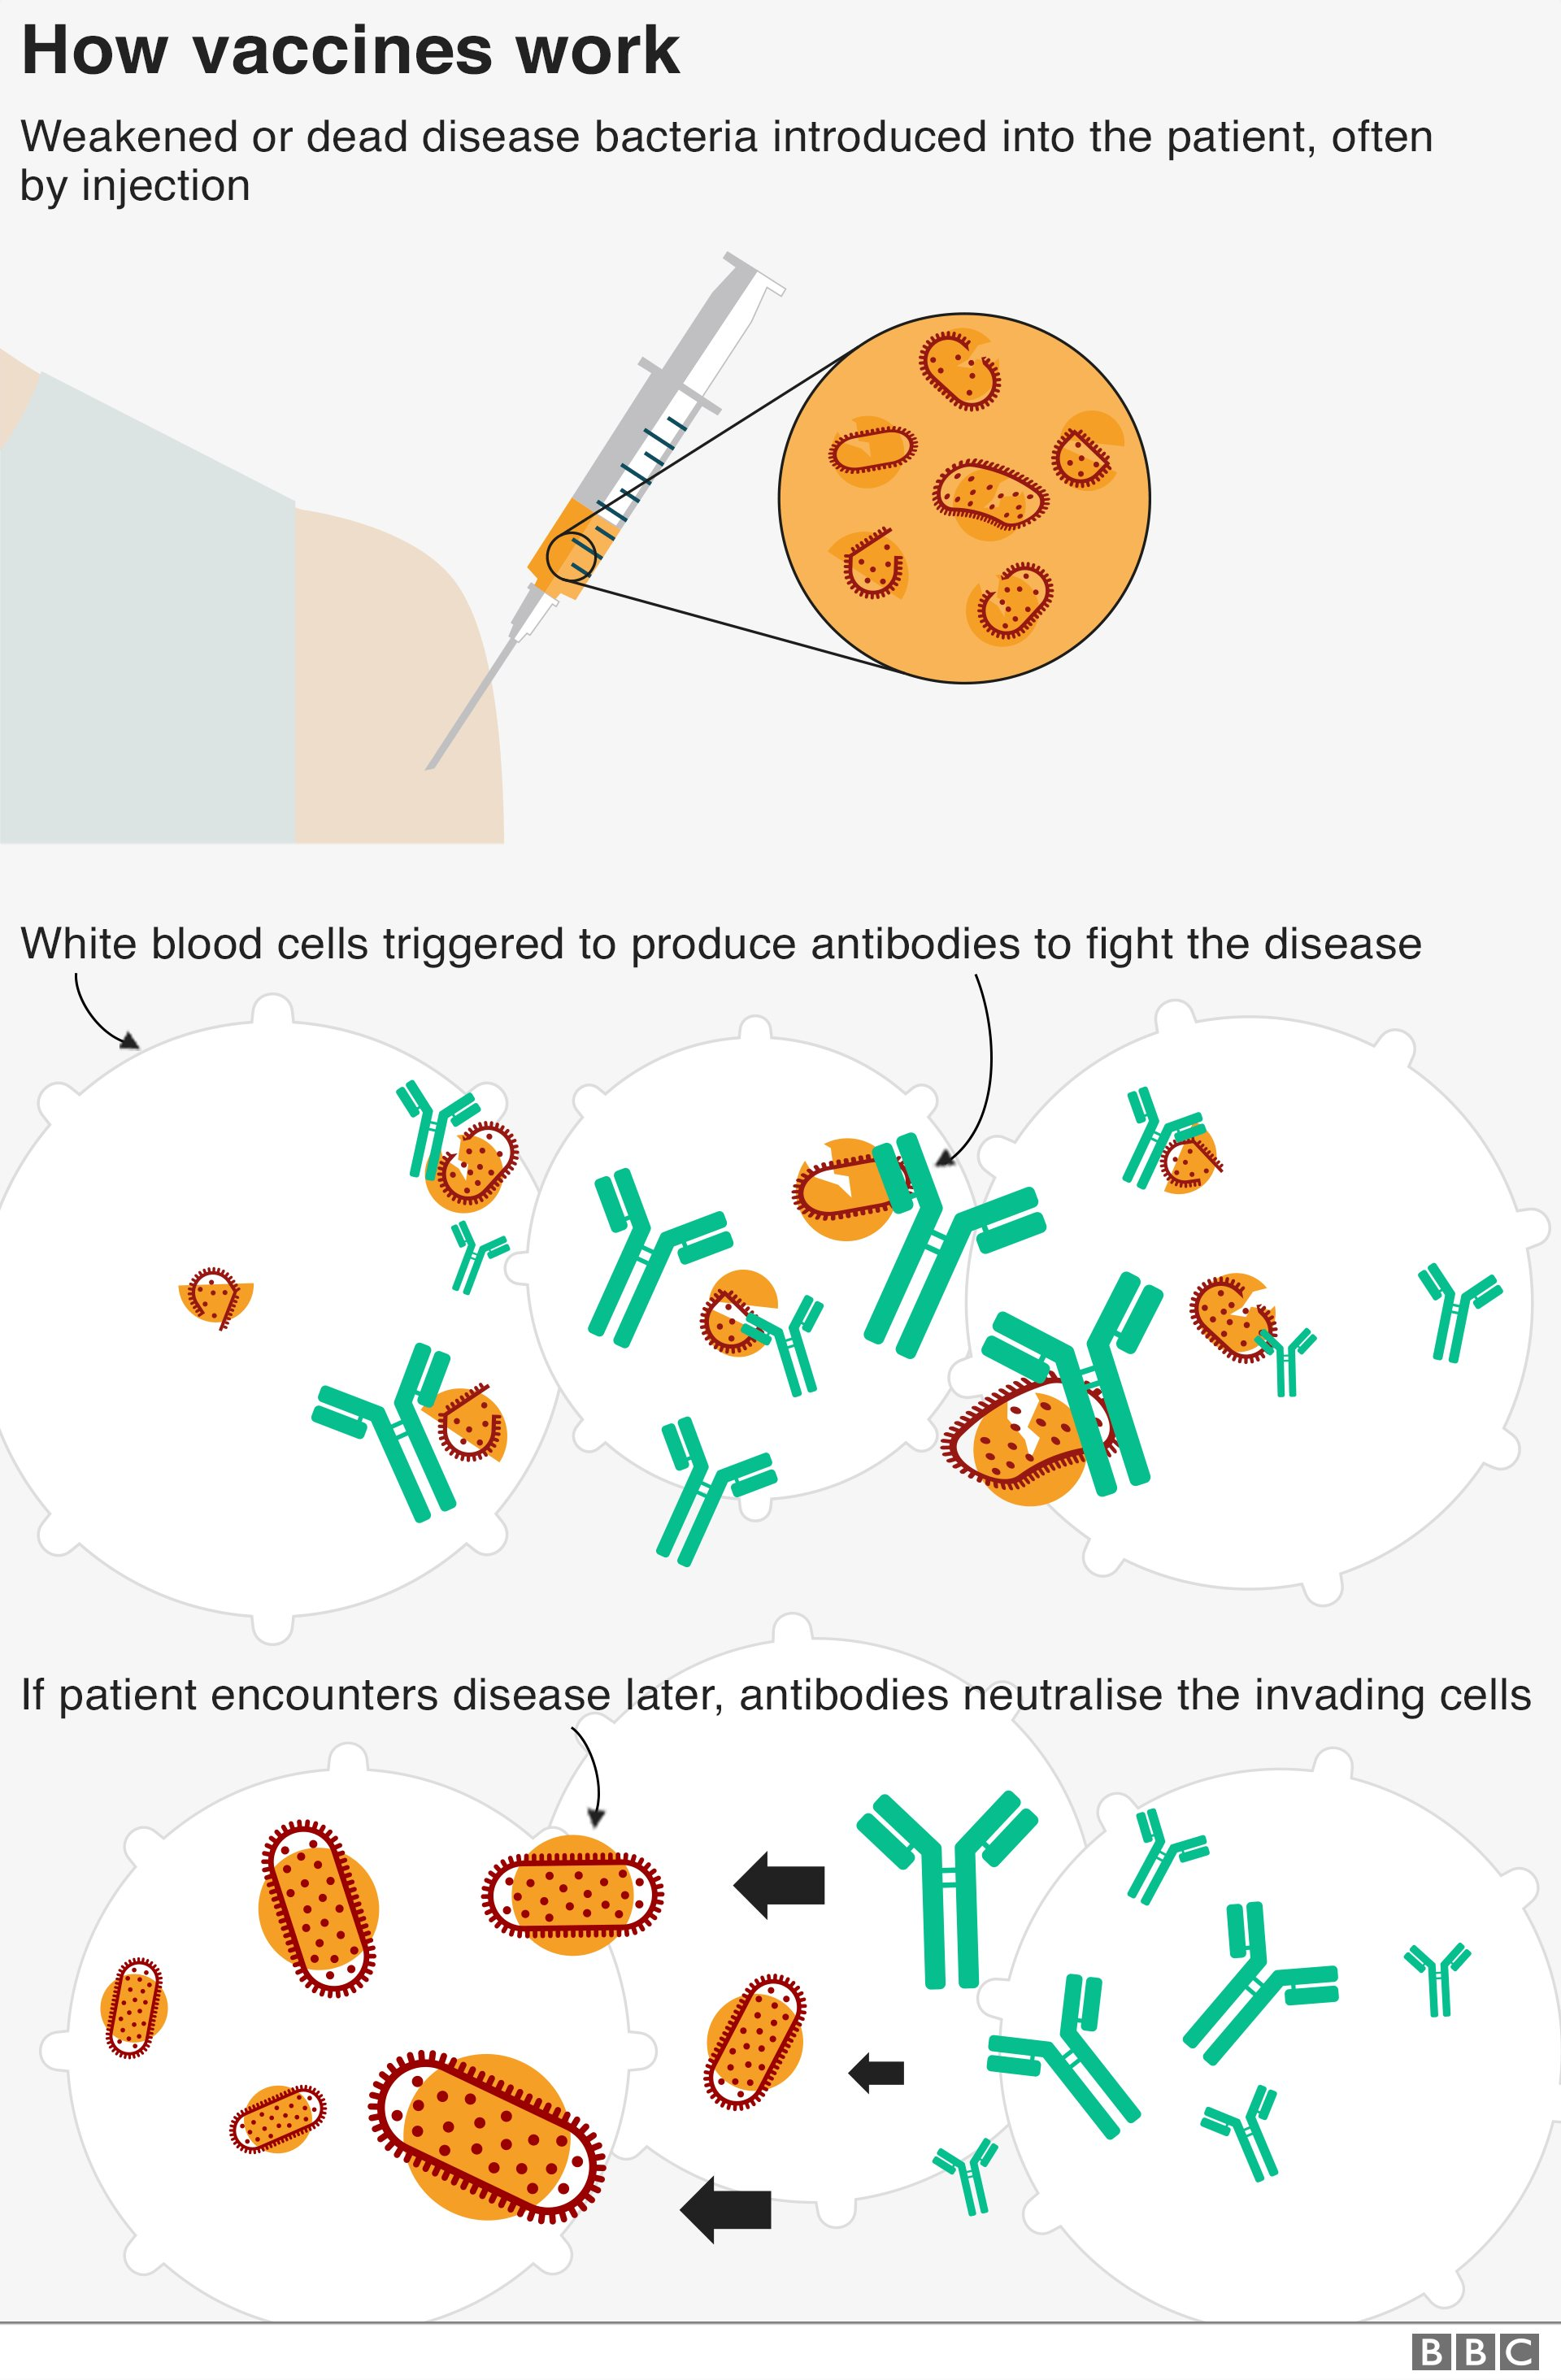 Text: How vaccines work? Weakened or dead disease bacteria introduced into the patient, often by injection. White blood triggered to produce antibodies to fight the disease. If patient encounters disease later, antibodies neutralise the invading cells.